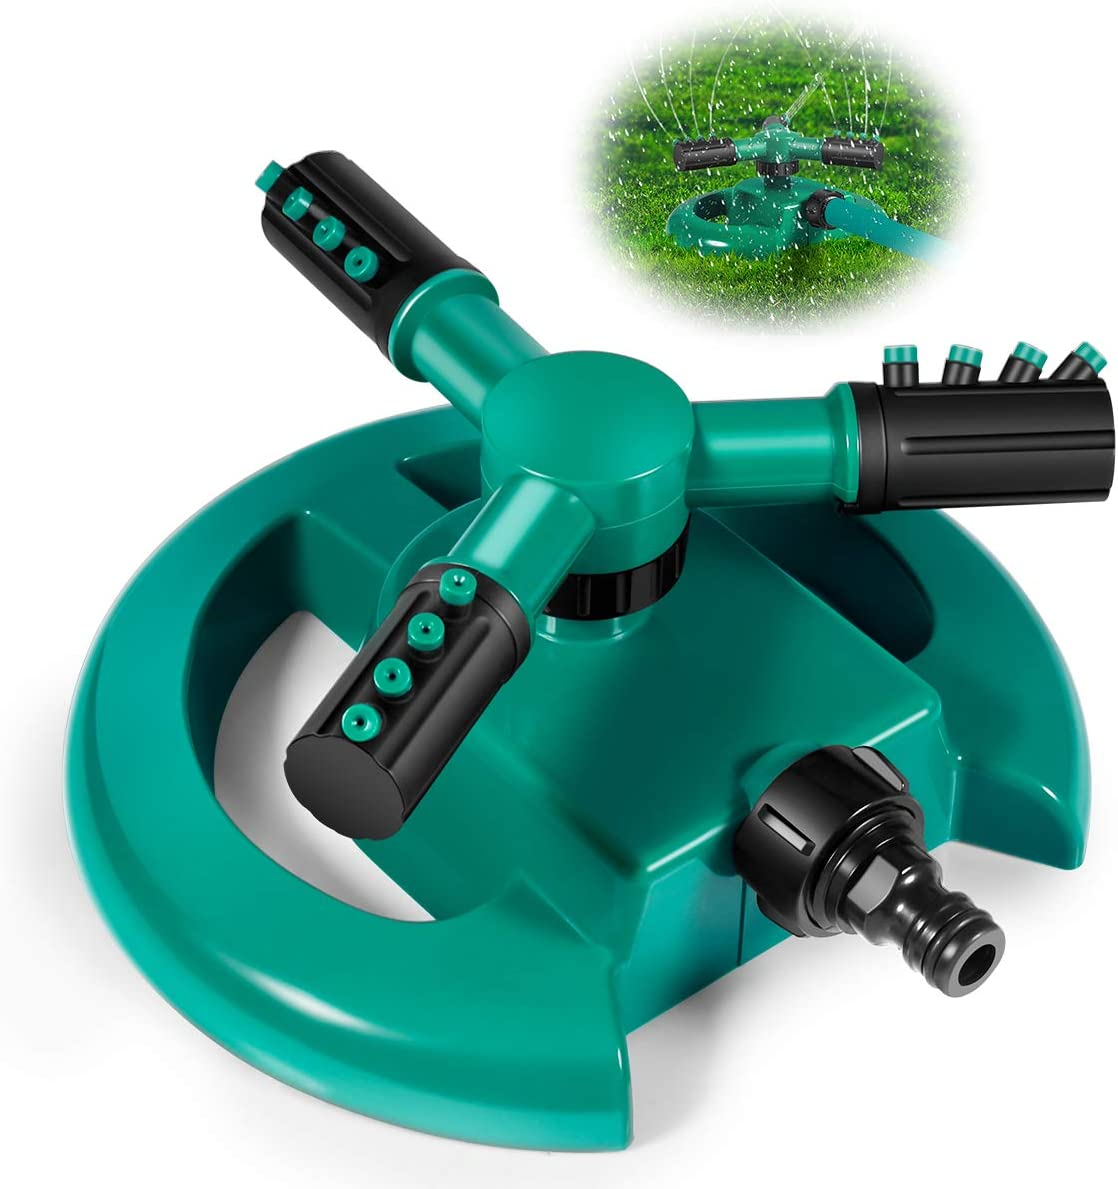 V-LXRONG Garden Sprinkler, Automatic Rotating Lawn Sprinkler, 360 Degree Large Area Coverage Water Sprinklers for Lawns and Gardens